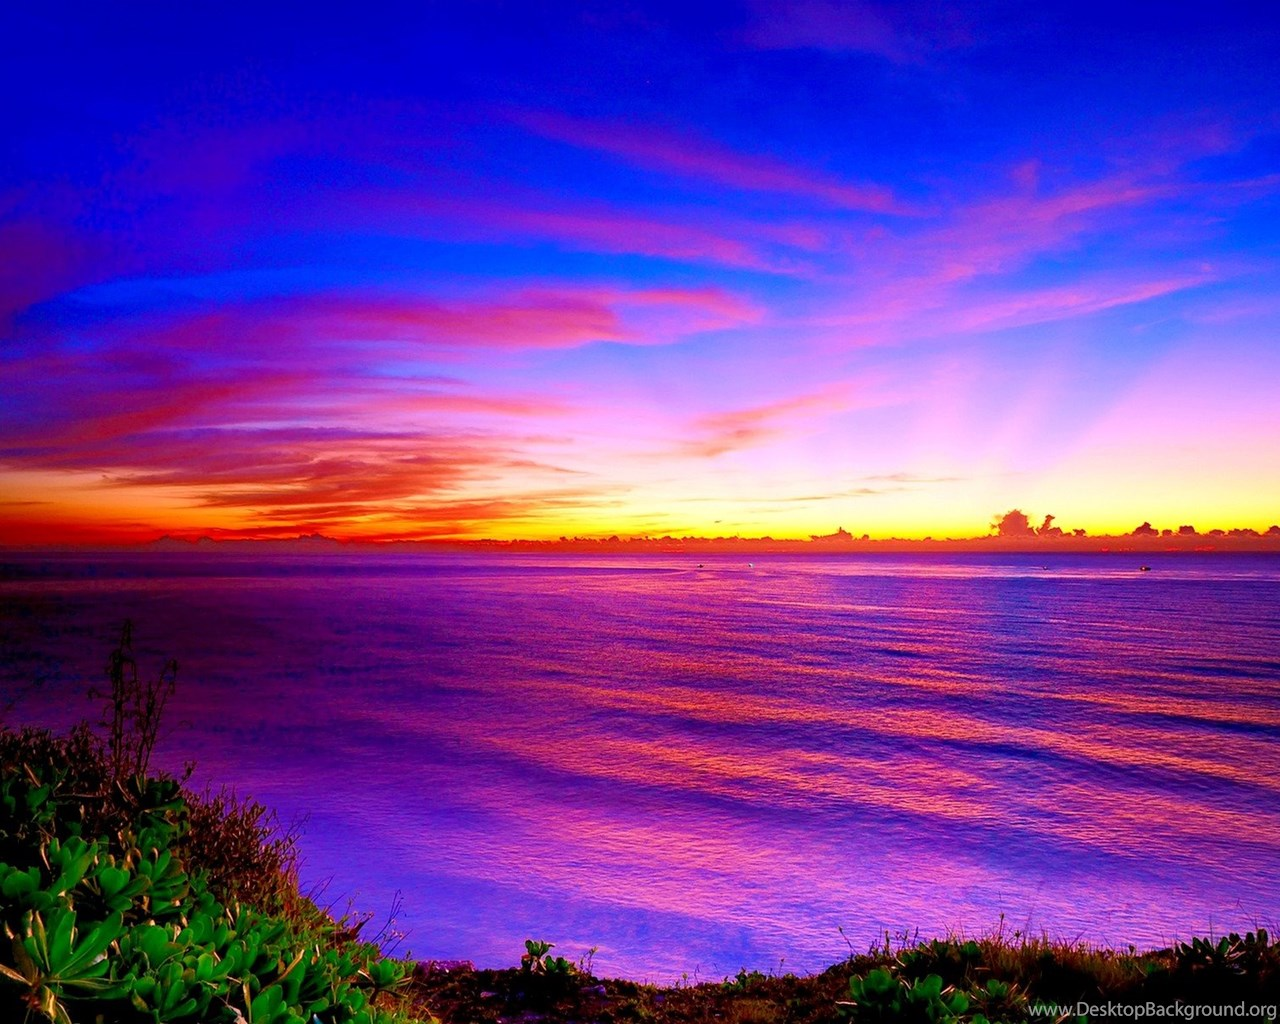 Cool And Beautiful Nature Desktop Wallpaper Image: Pictures Of Nature Scenery Wallpapers Full HD Kemecer.com